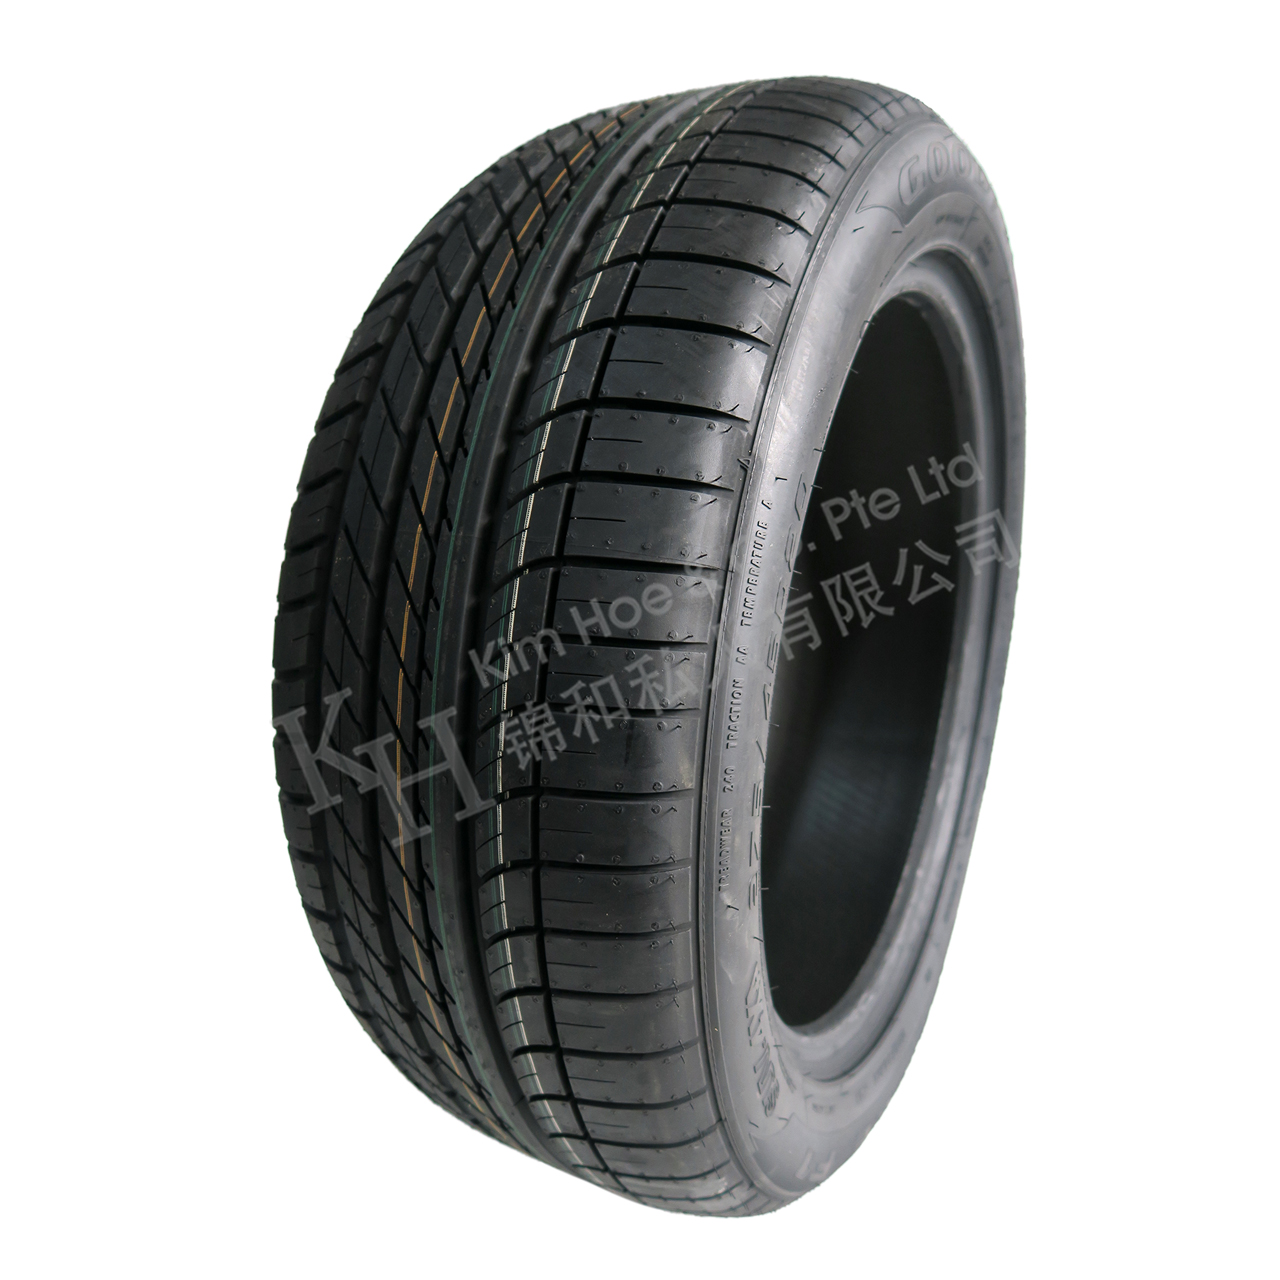 http://kimhoeco.com/wp-content/uploads/2016/10/goodyear-asymentric-suv.jpg